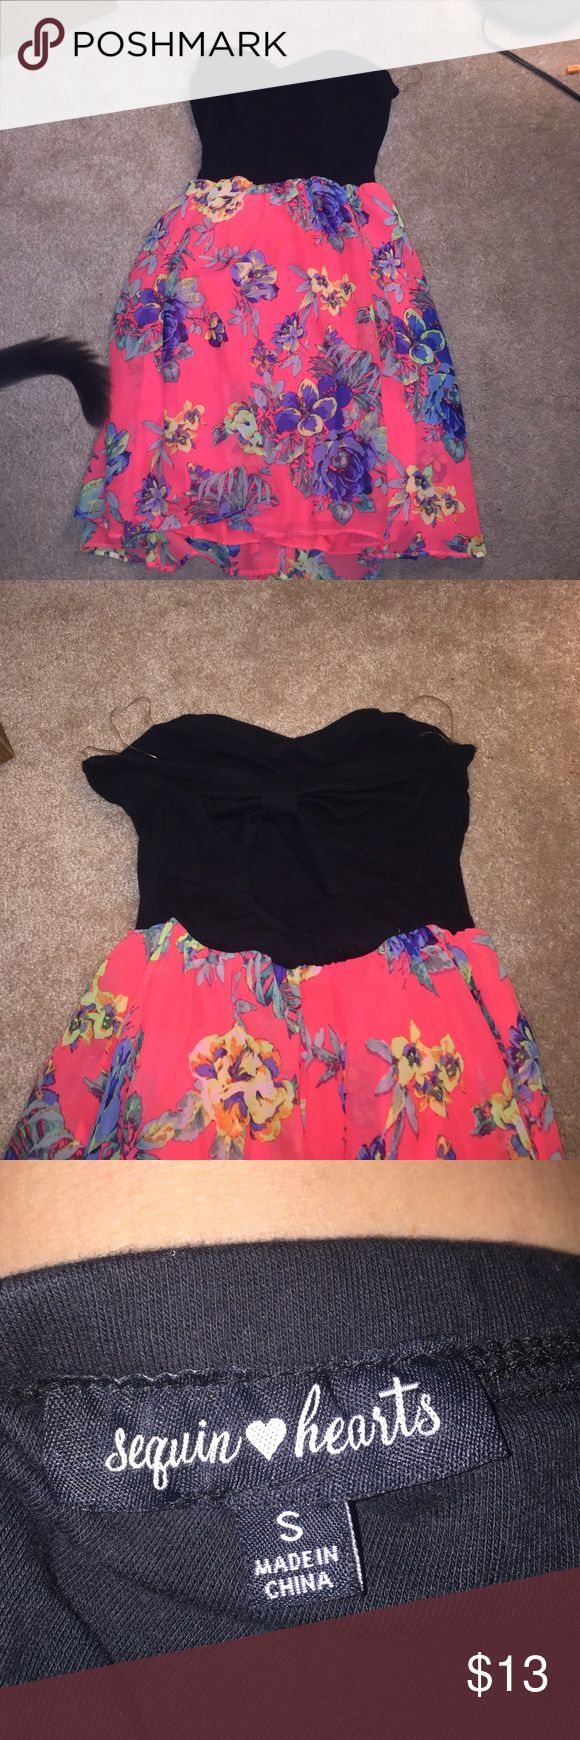 Cute summer dress!!! A black and neon pink summer dress with flower accents! Strapless with open back! Worn once and loved it! Sequin Hearts Dresses Mini